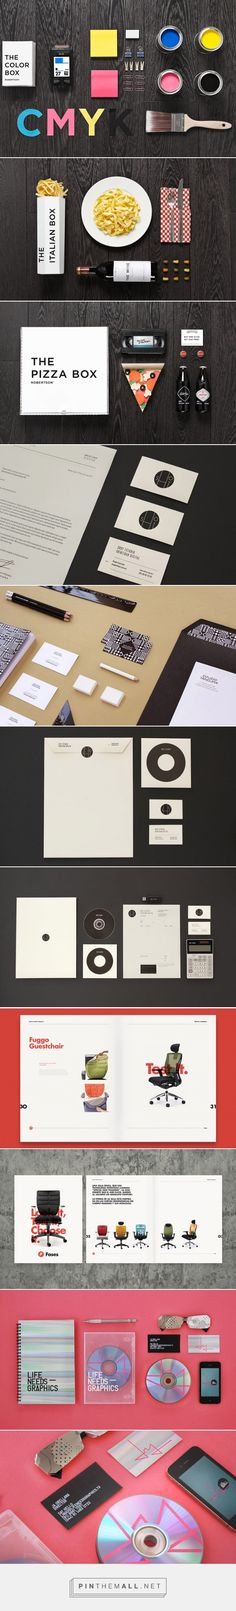 Great new Graphic Design works by Manifiesto, a Studio from Mexico. - created via https://pinthemall.net